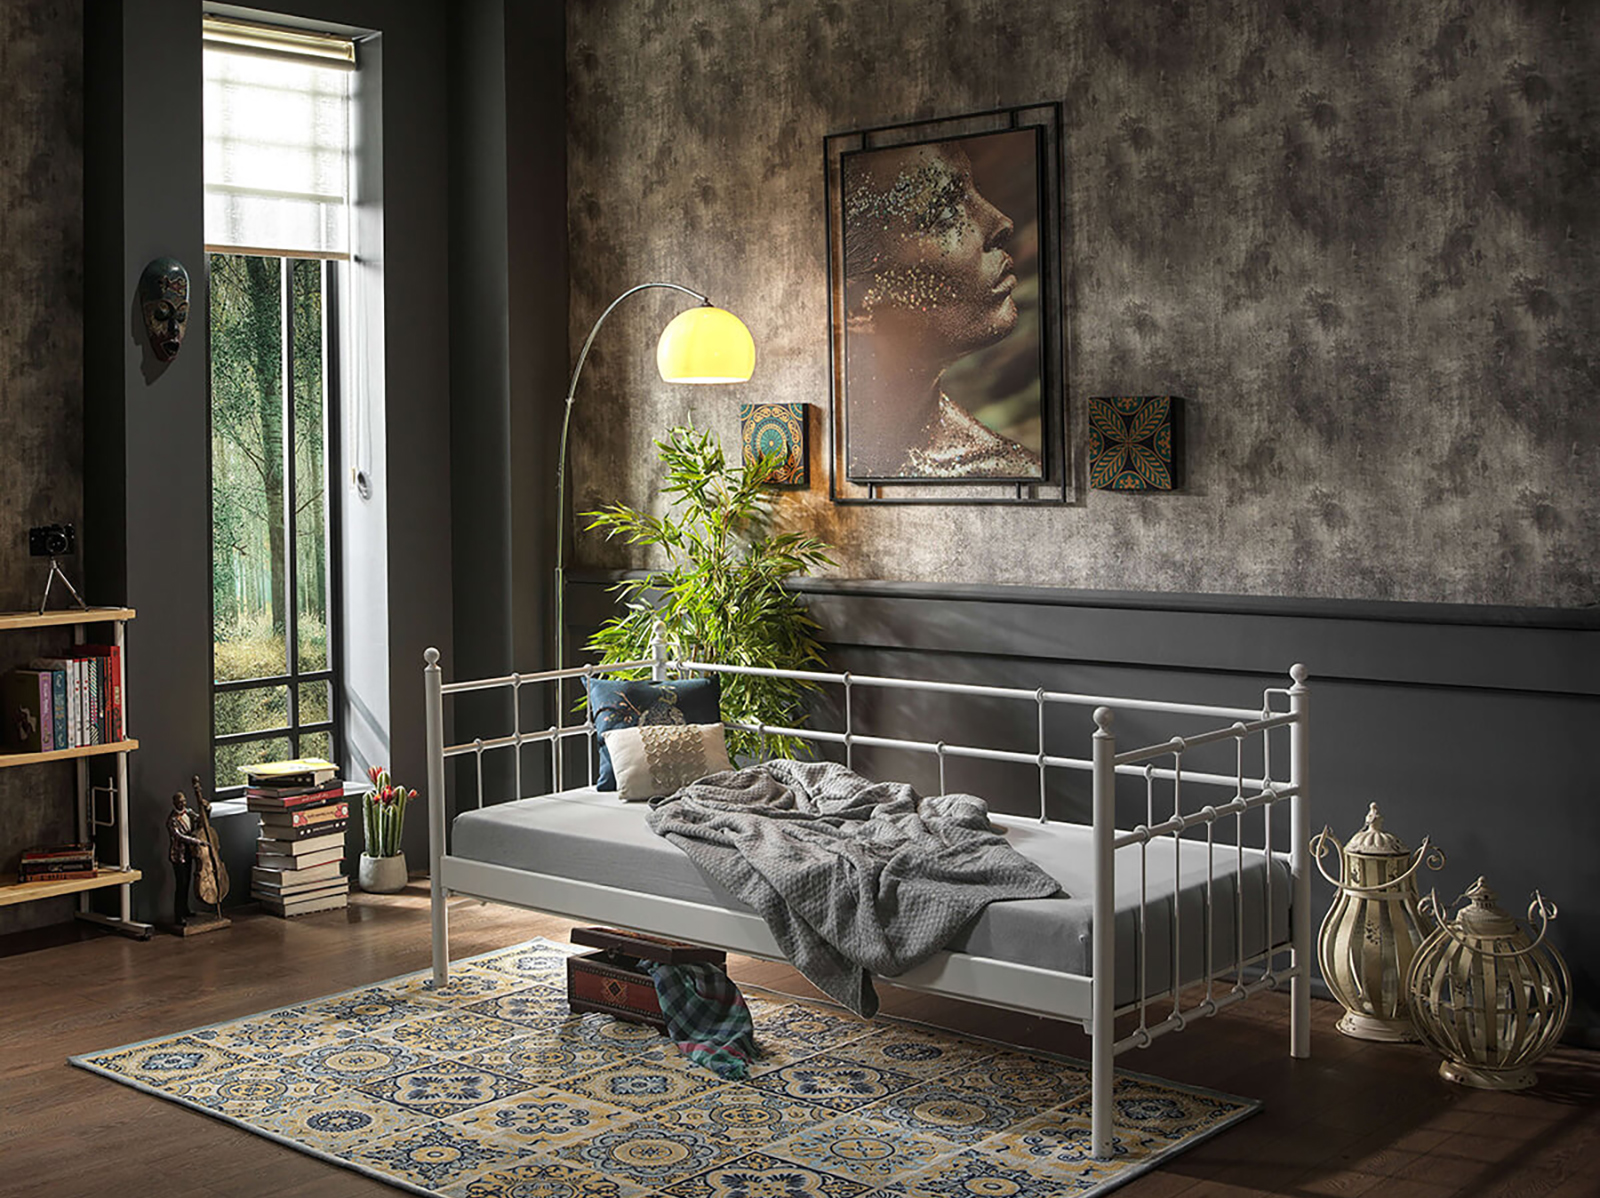 Lalas DayBed